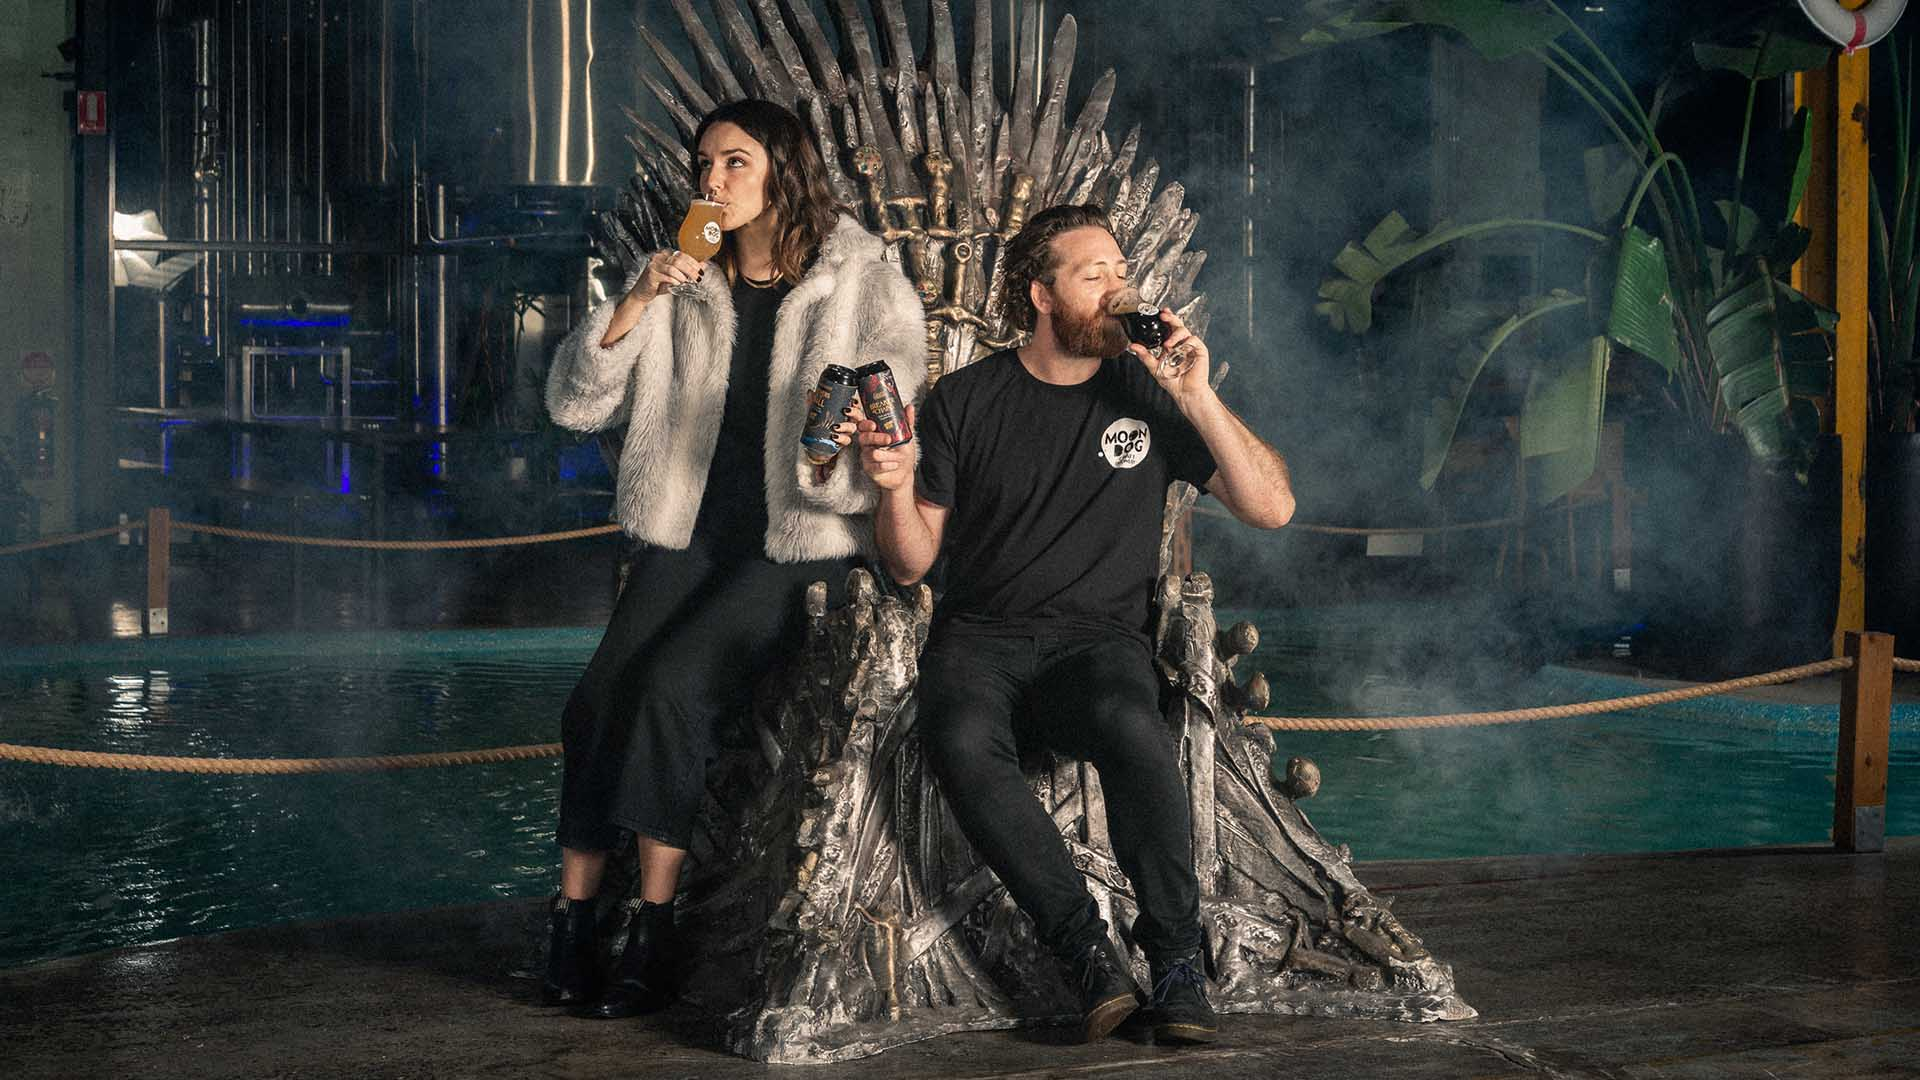 Two Aussie-Brewed 'Game of Thrones' Beers Are Coming to Mark the HBO Show's Tenth Anniversary